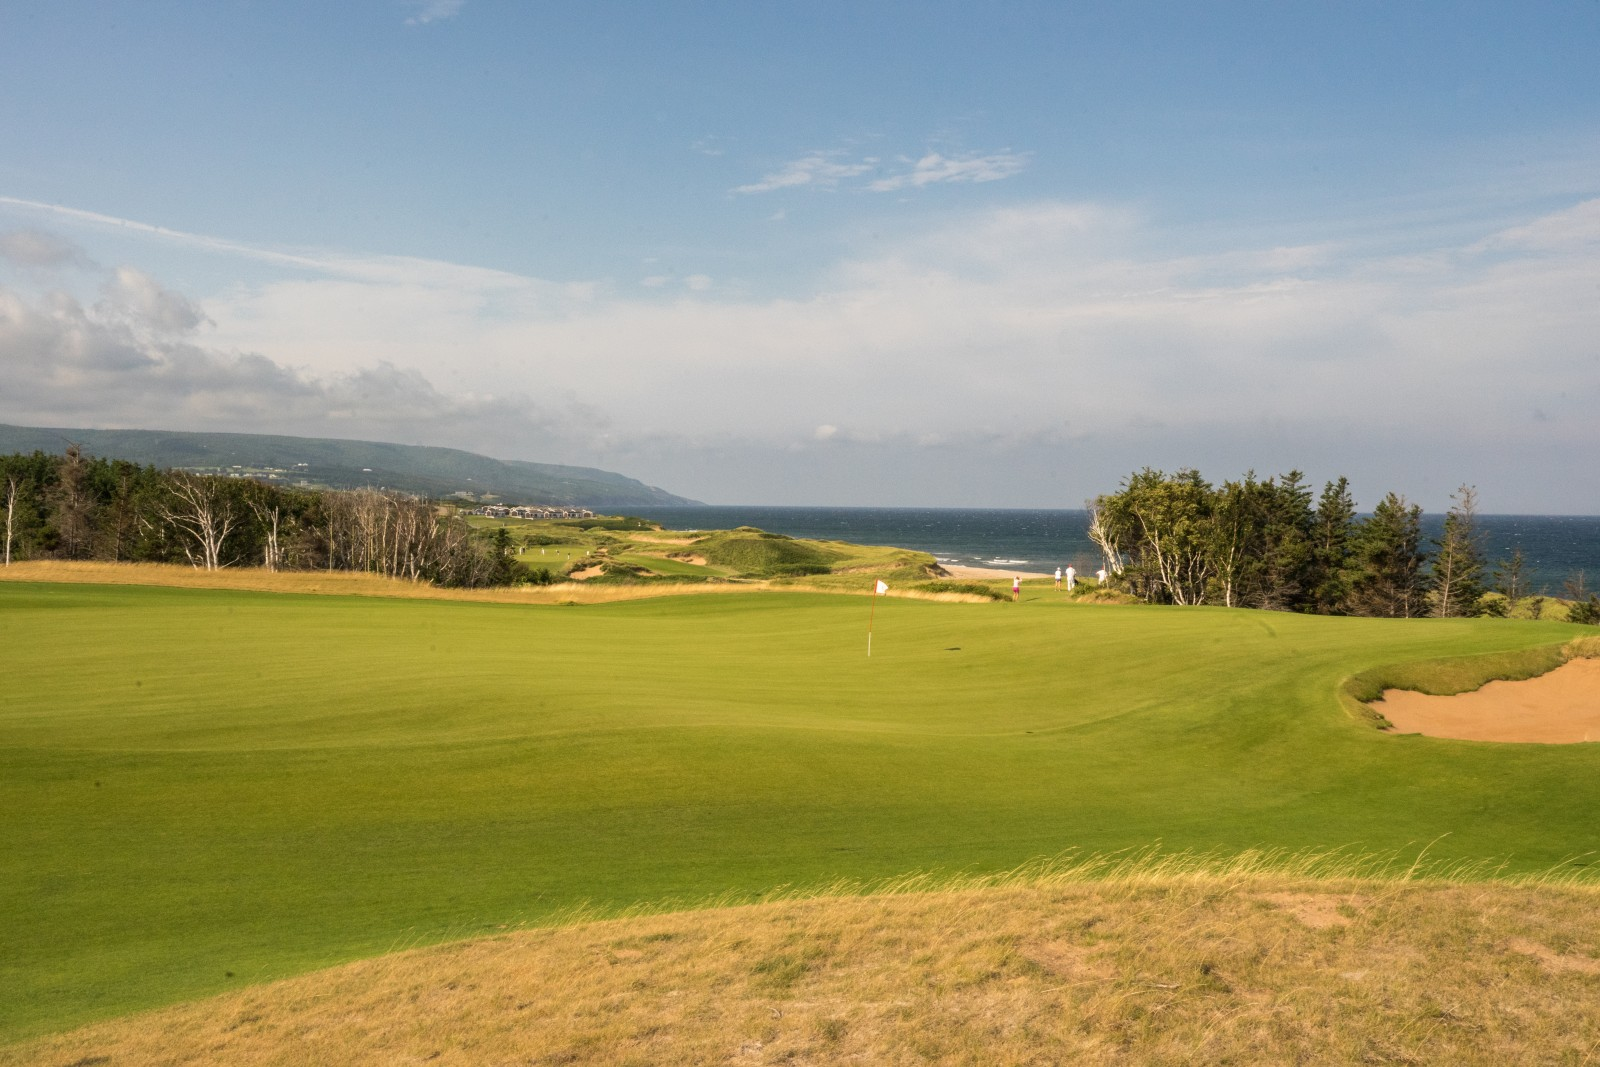 Cabot Cliffs Grün 8